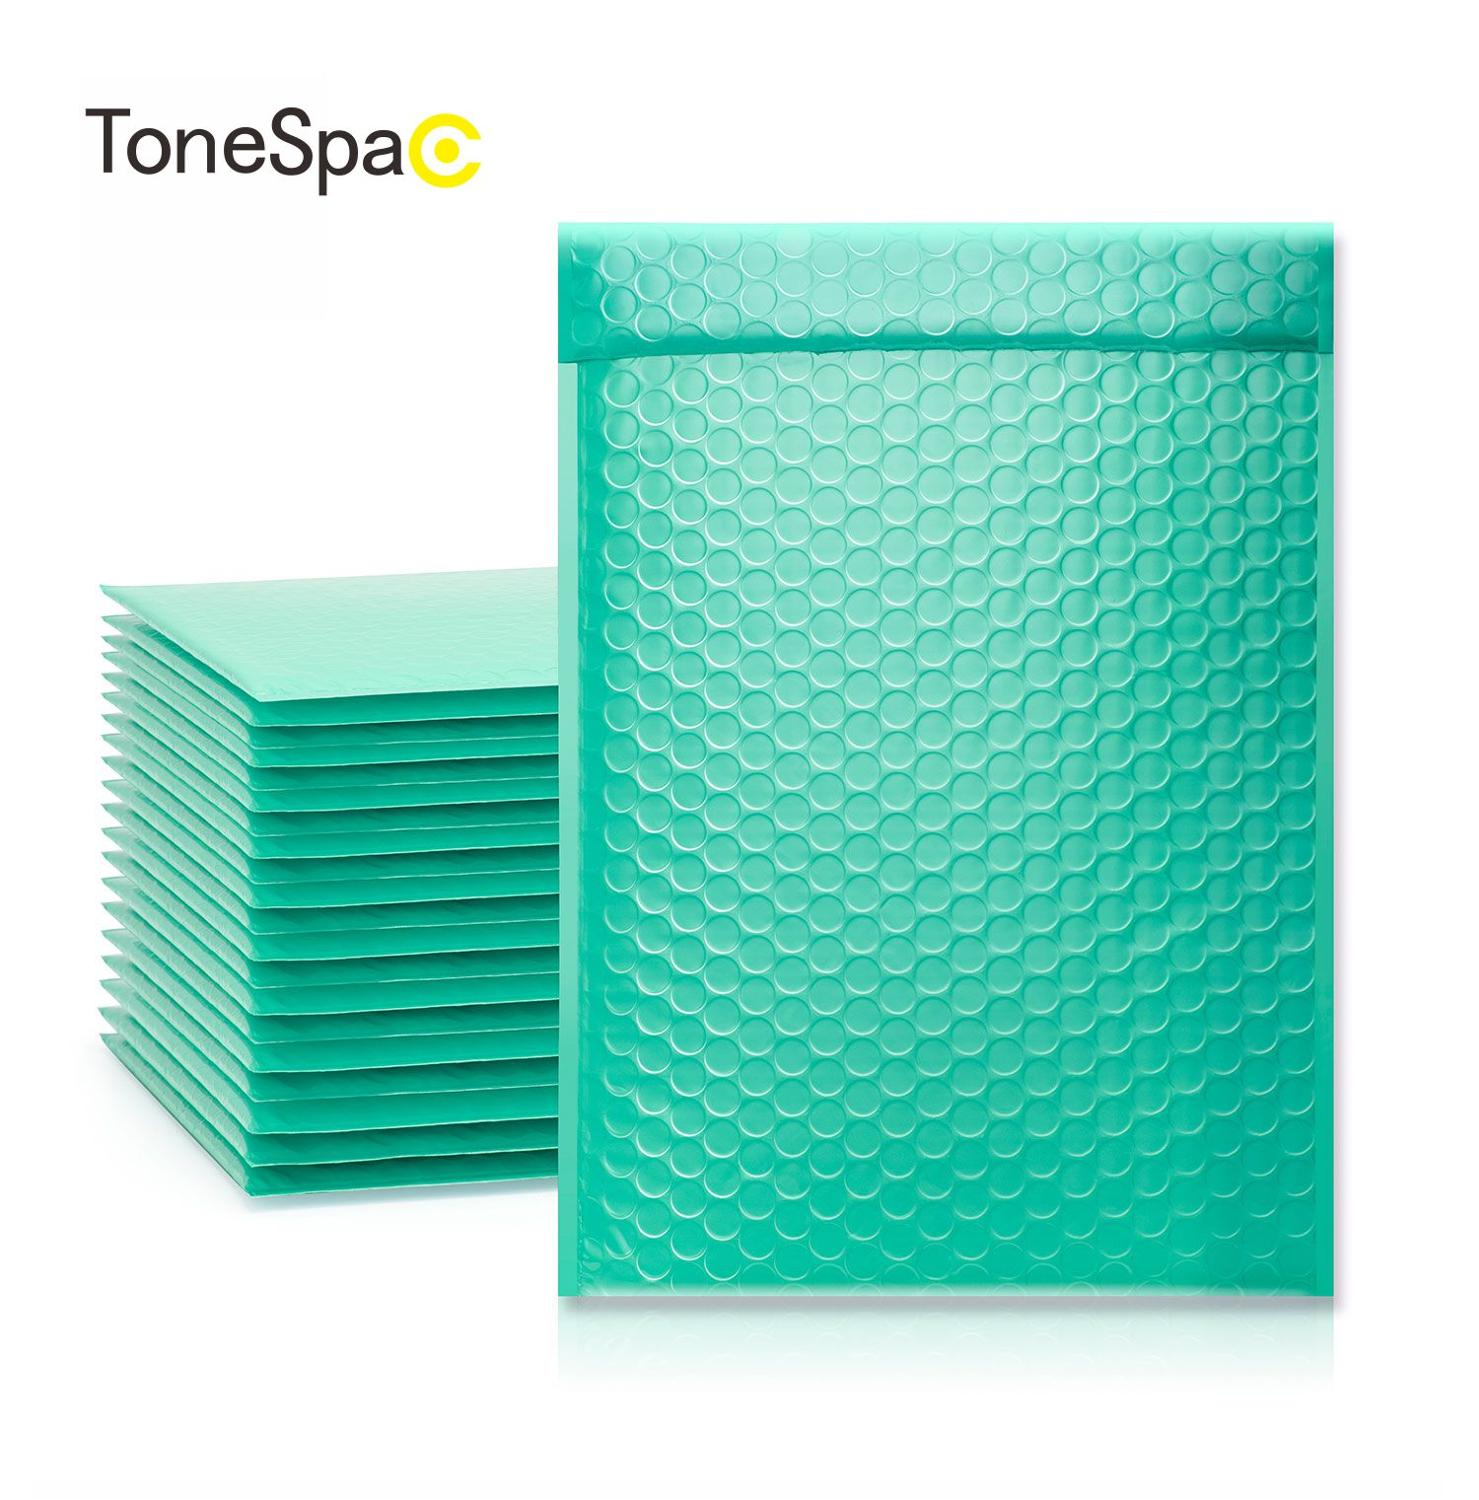 TONESPAC 236*280mm 25pcs Bubble Self Seal Envelope Shipping Mailer Padded Poly Waterproof Express Packaging Bags  Teal